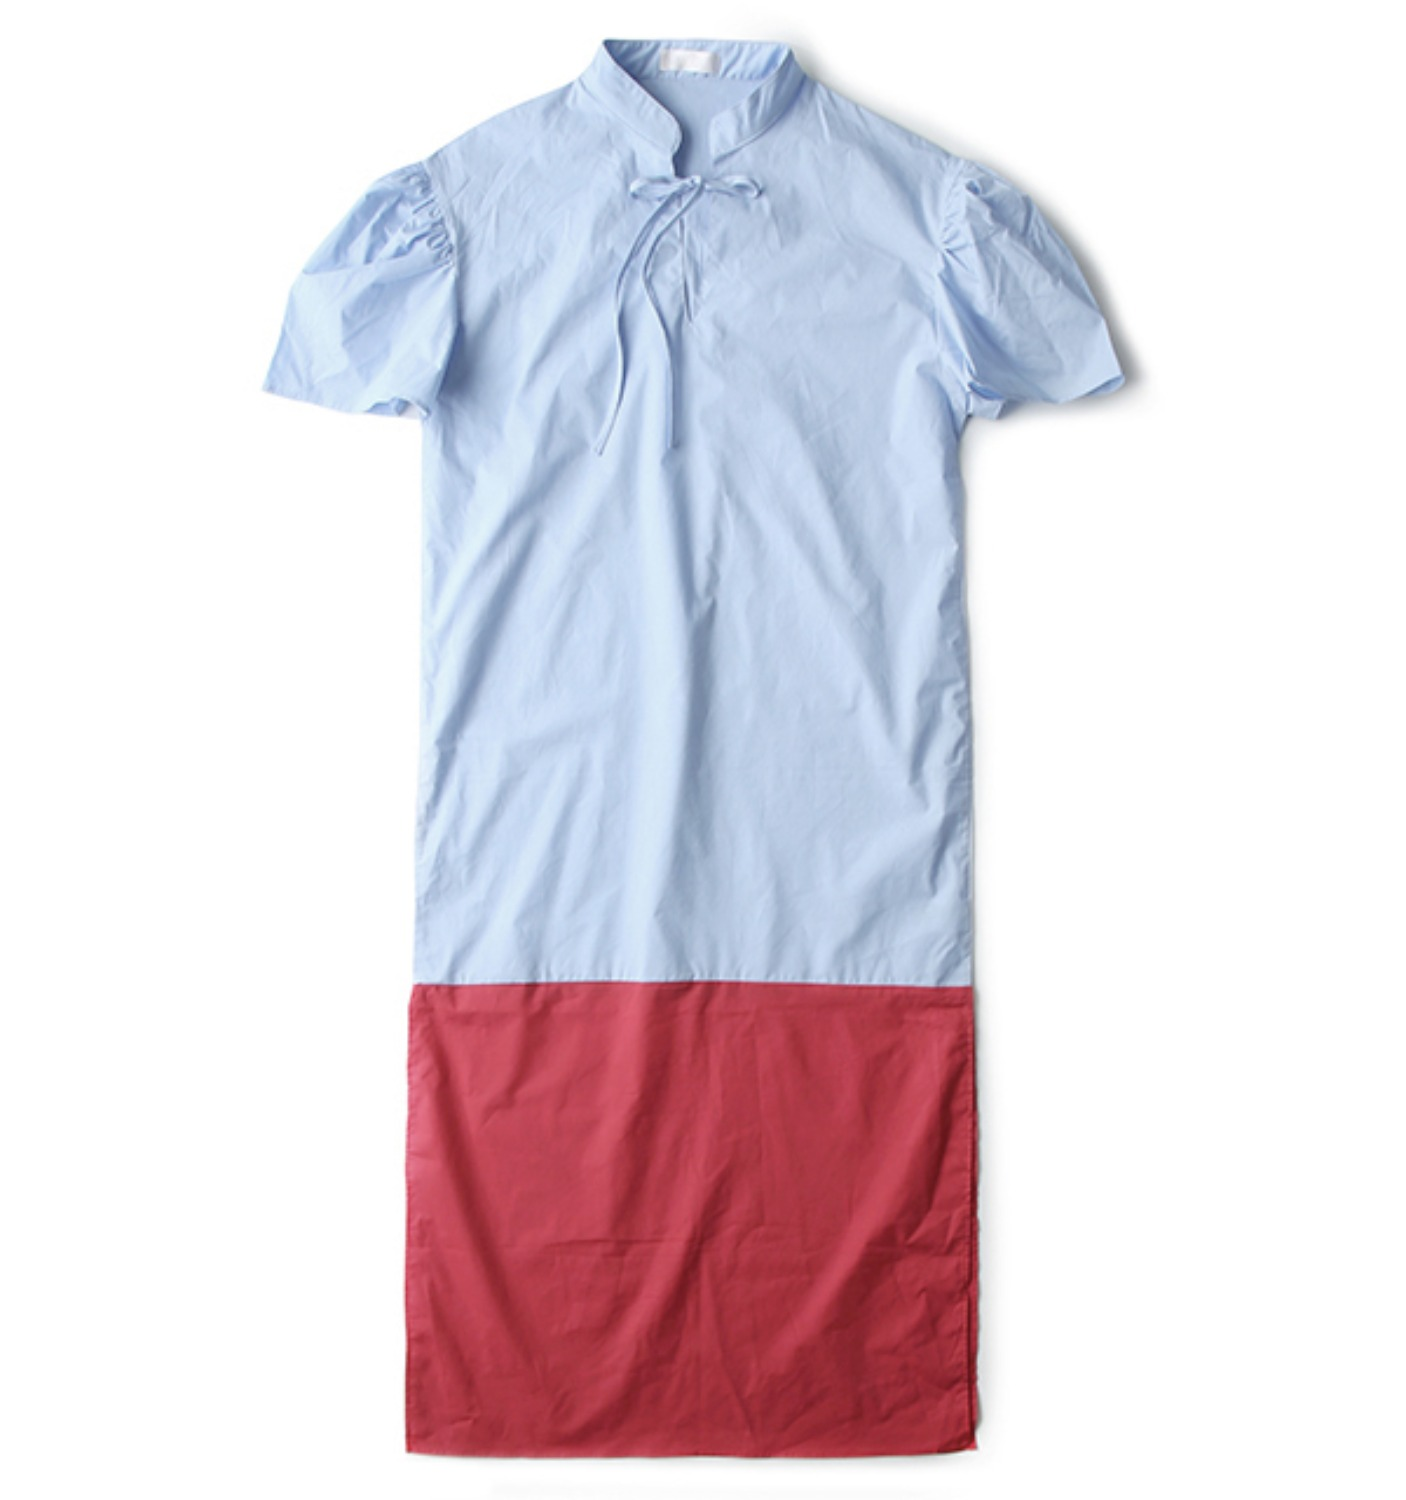 FILLE DRESS SKY BLUE/RED